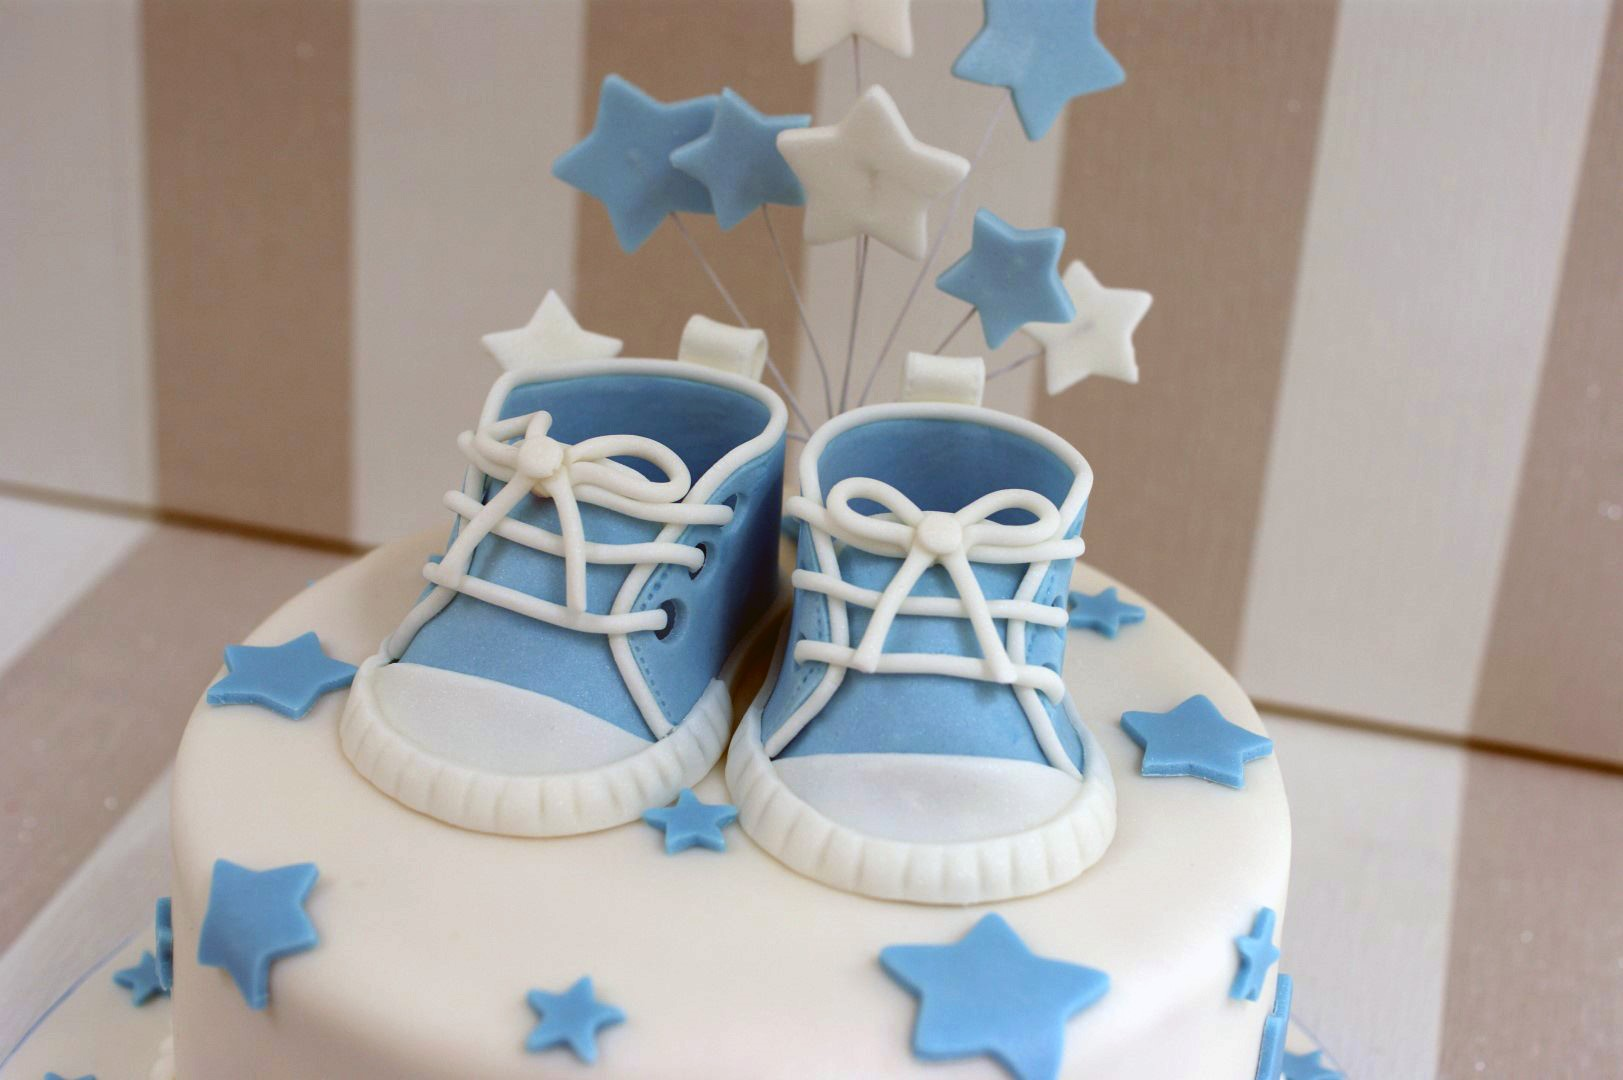 Boyu0027s Baby Shower Cake With Cupcakes View Gallery / Read Post